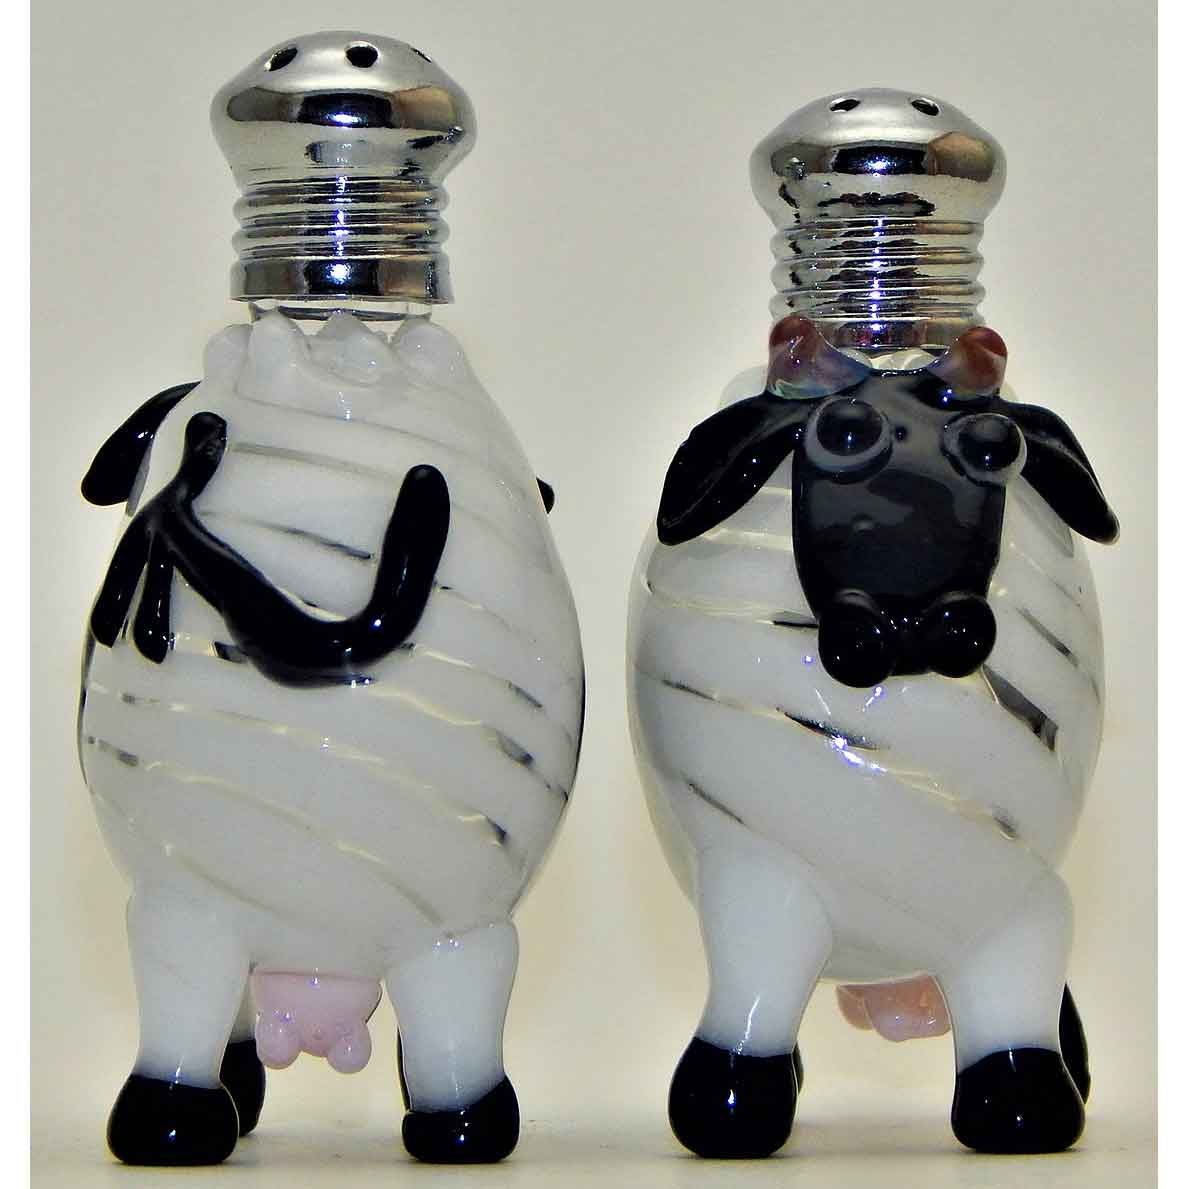 Cows Blown Glass Salt and Pepper Shaker 260 by Four Sisters Art Glass